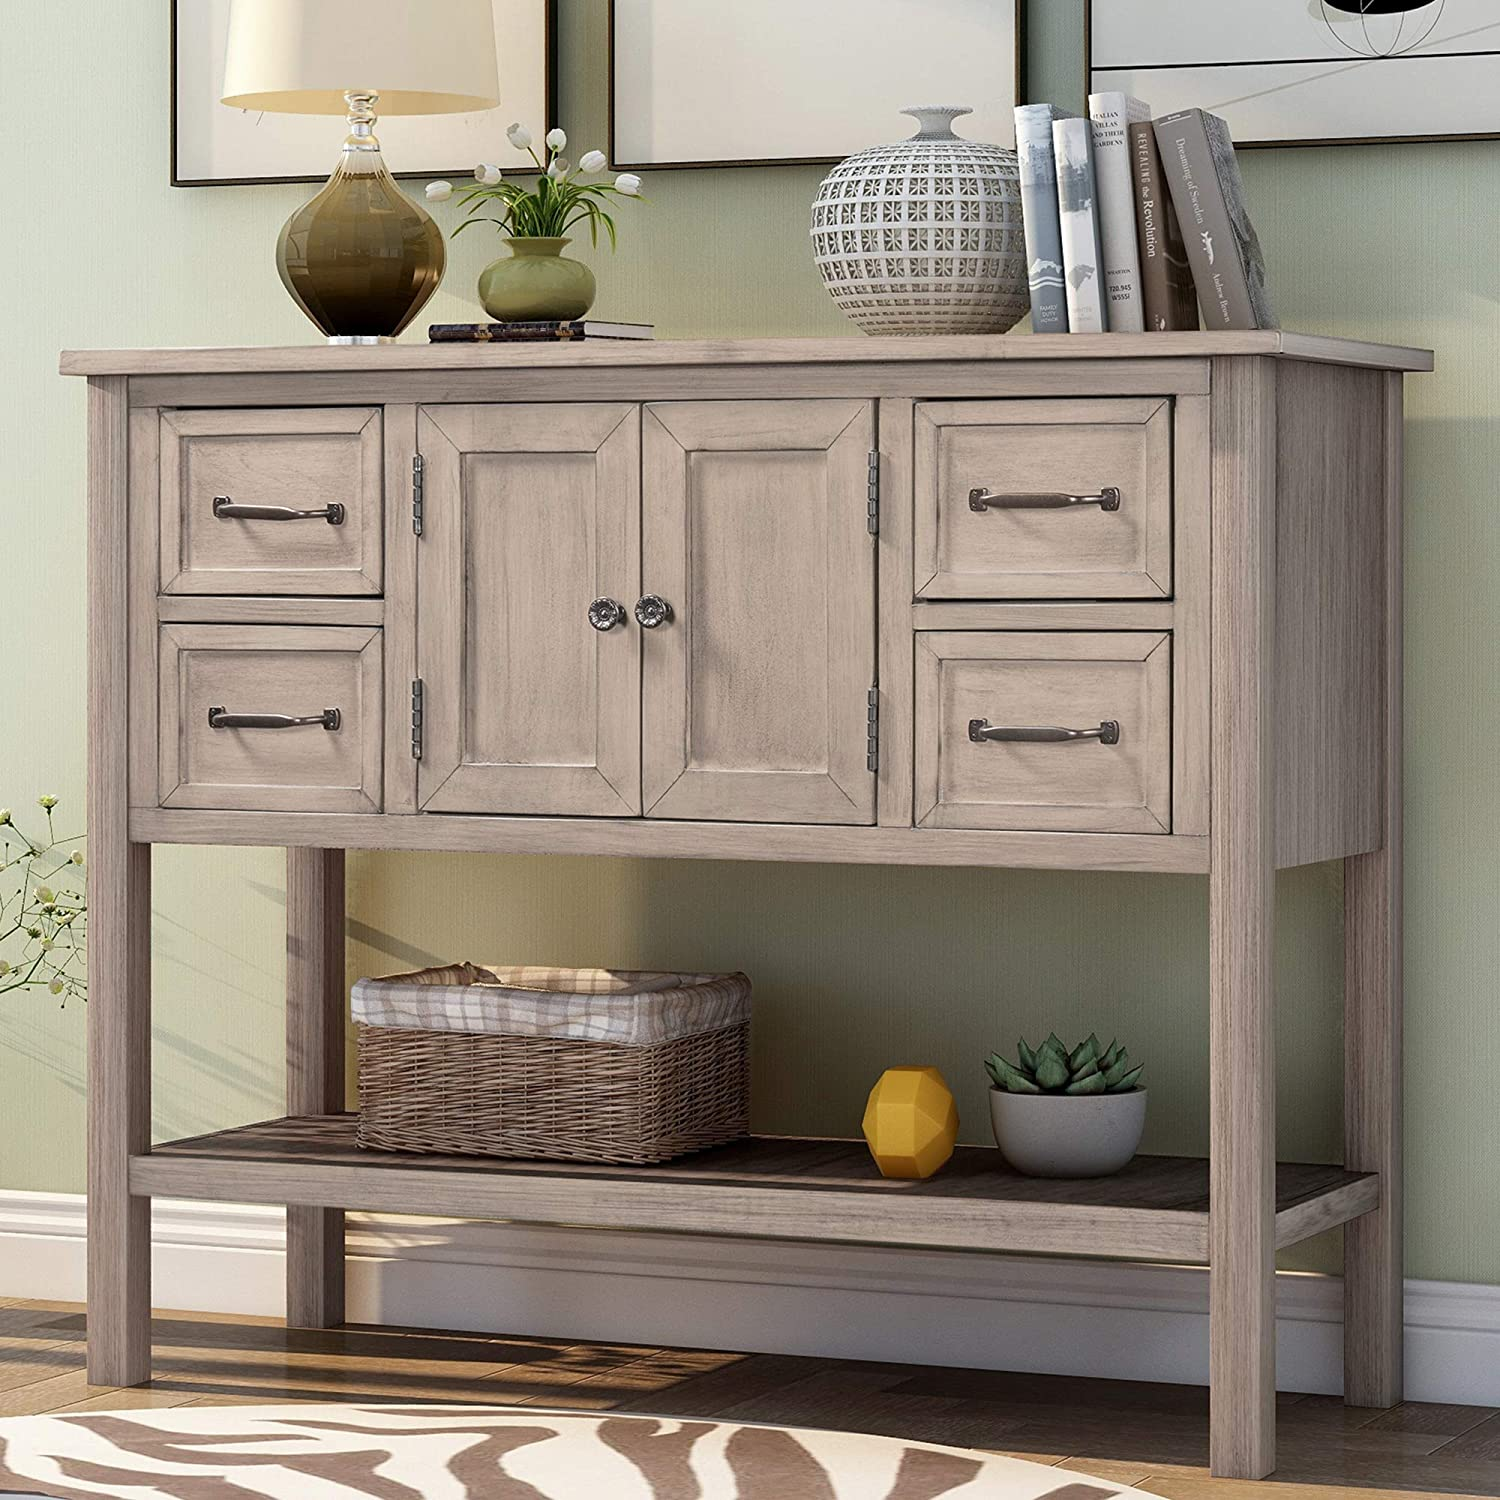 P PURLOVE Console Table Buffet Table Wood Buffet Storage Cabinet with Drawer and Bottom Shelf, Buffet Server for Living Room Kitchen Dining Room Furniture (More Light Brown)